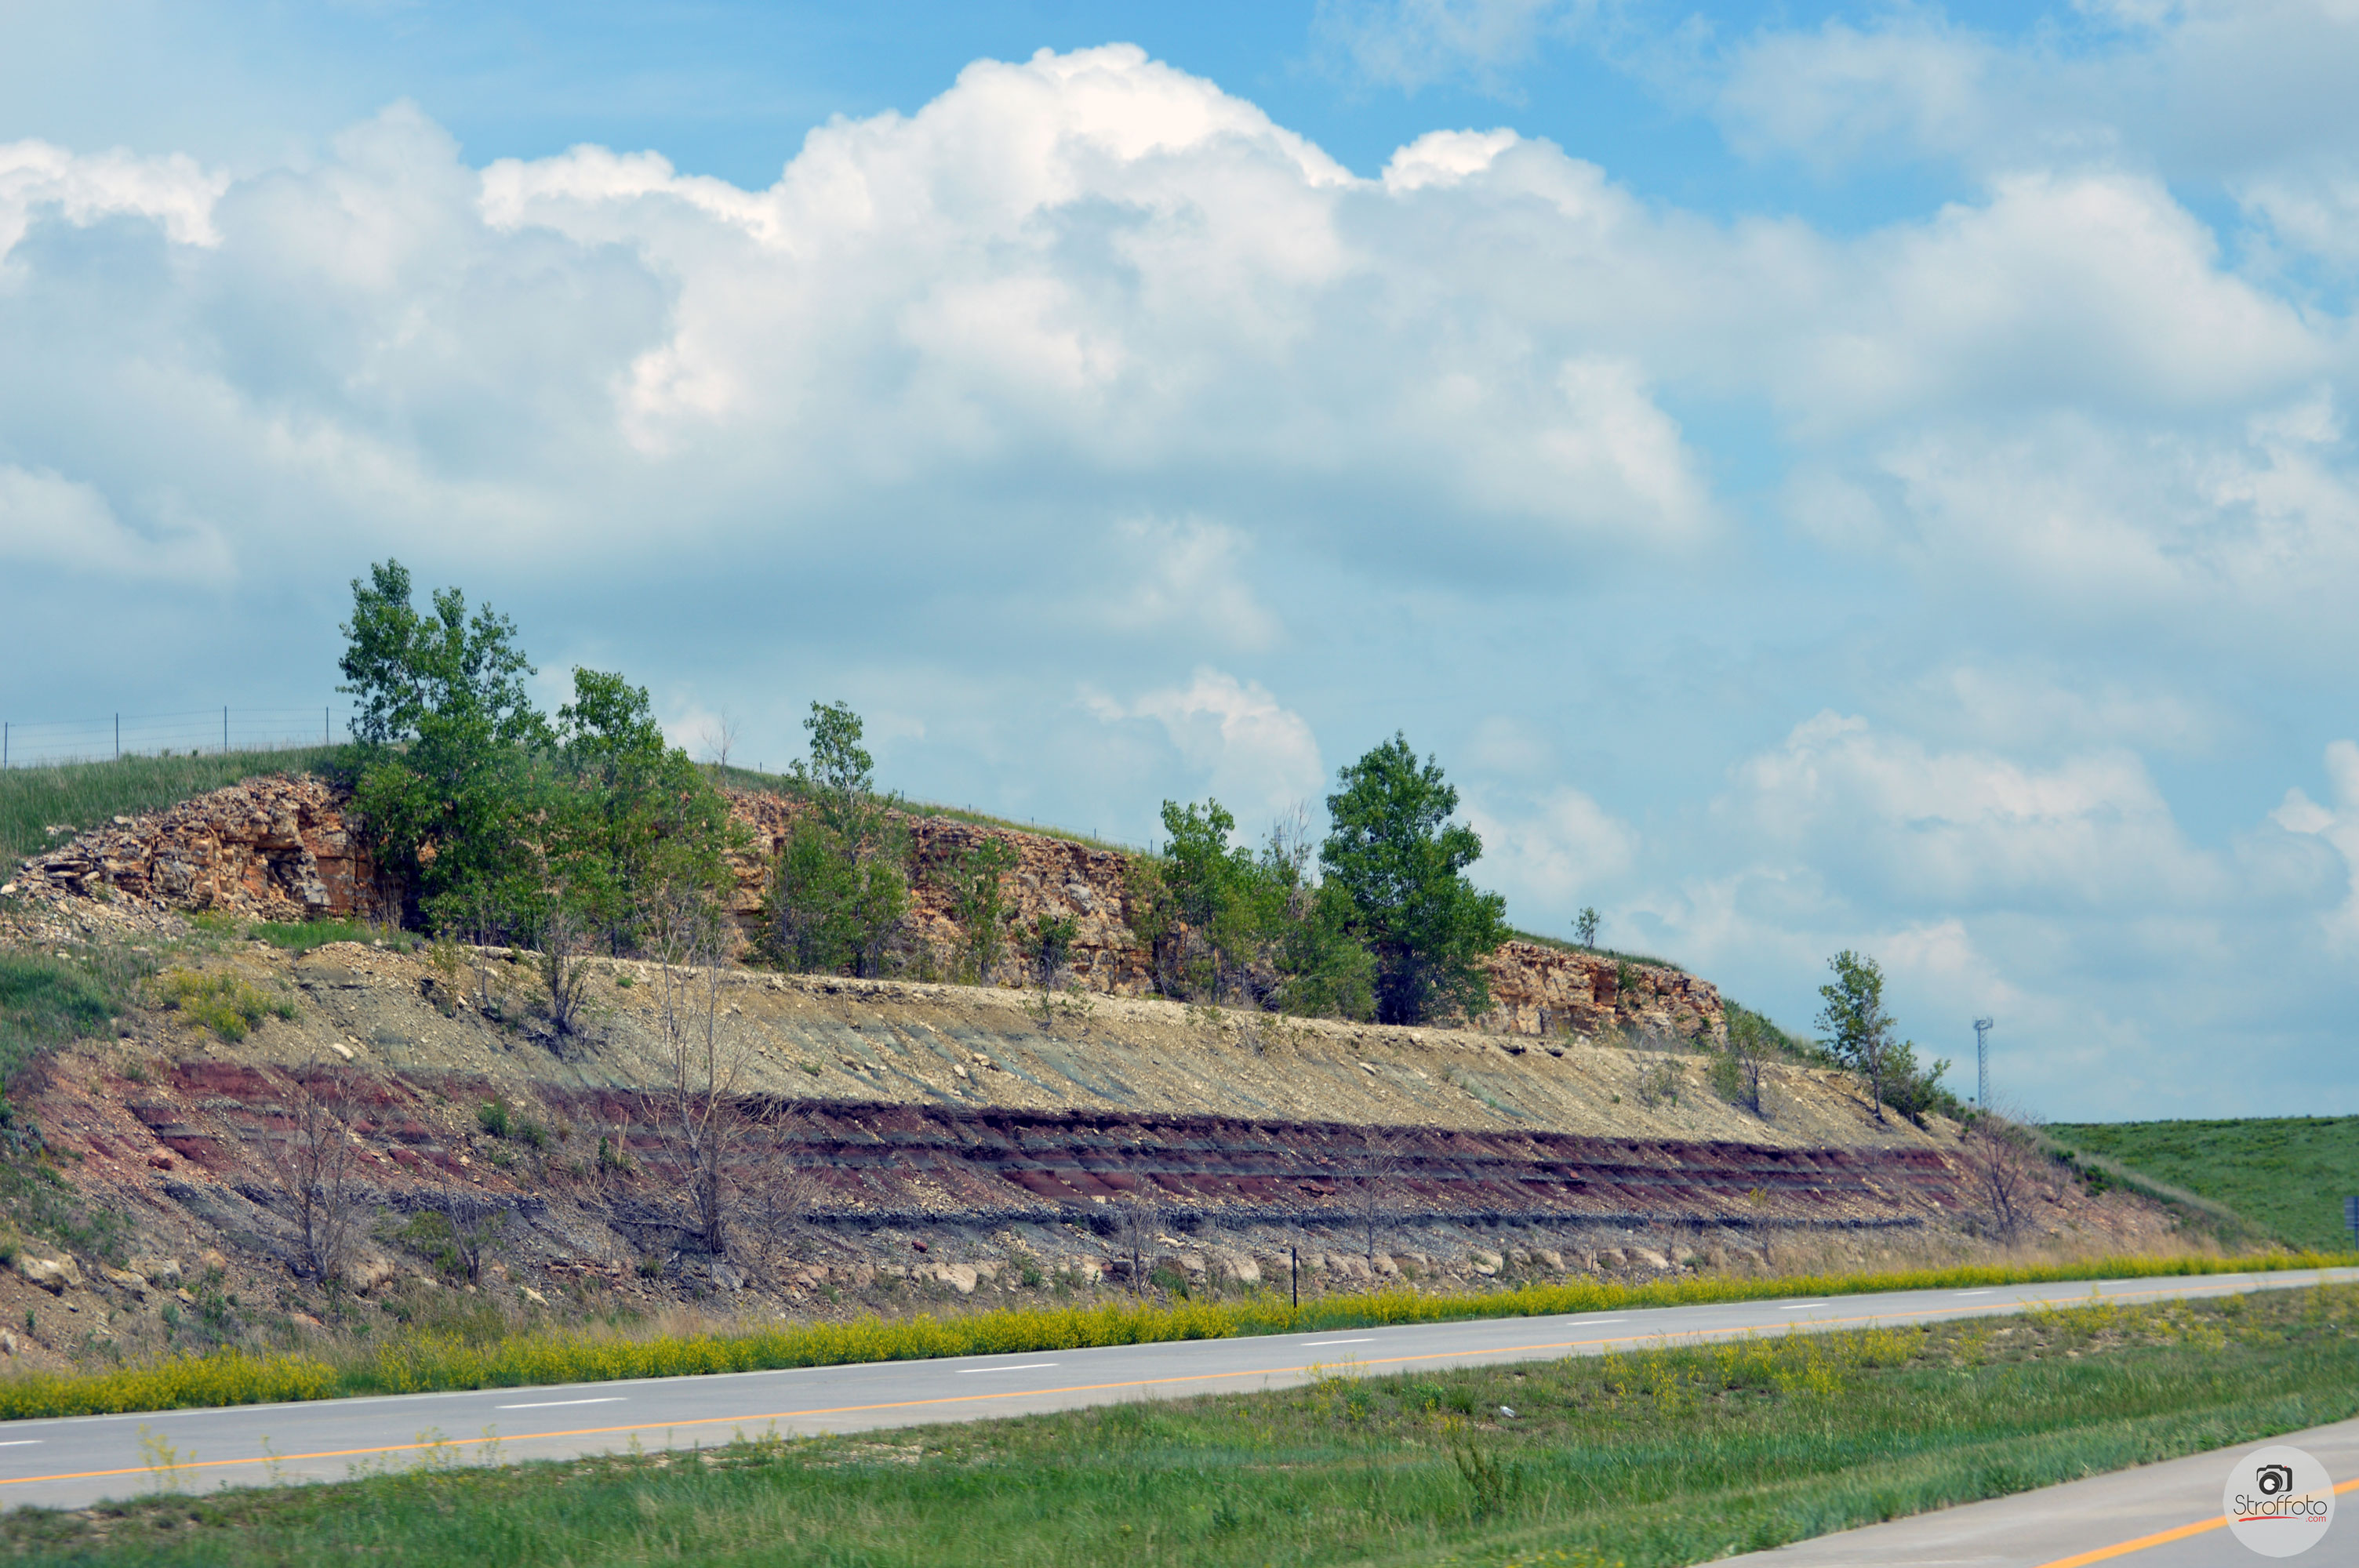 Day 25 - Road Trip 2014